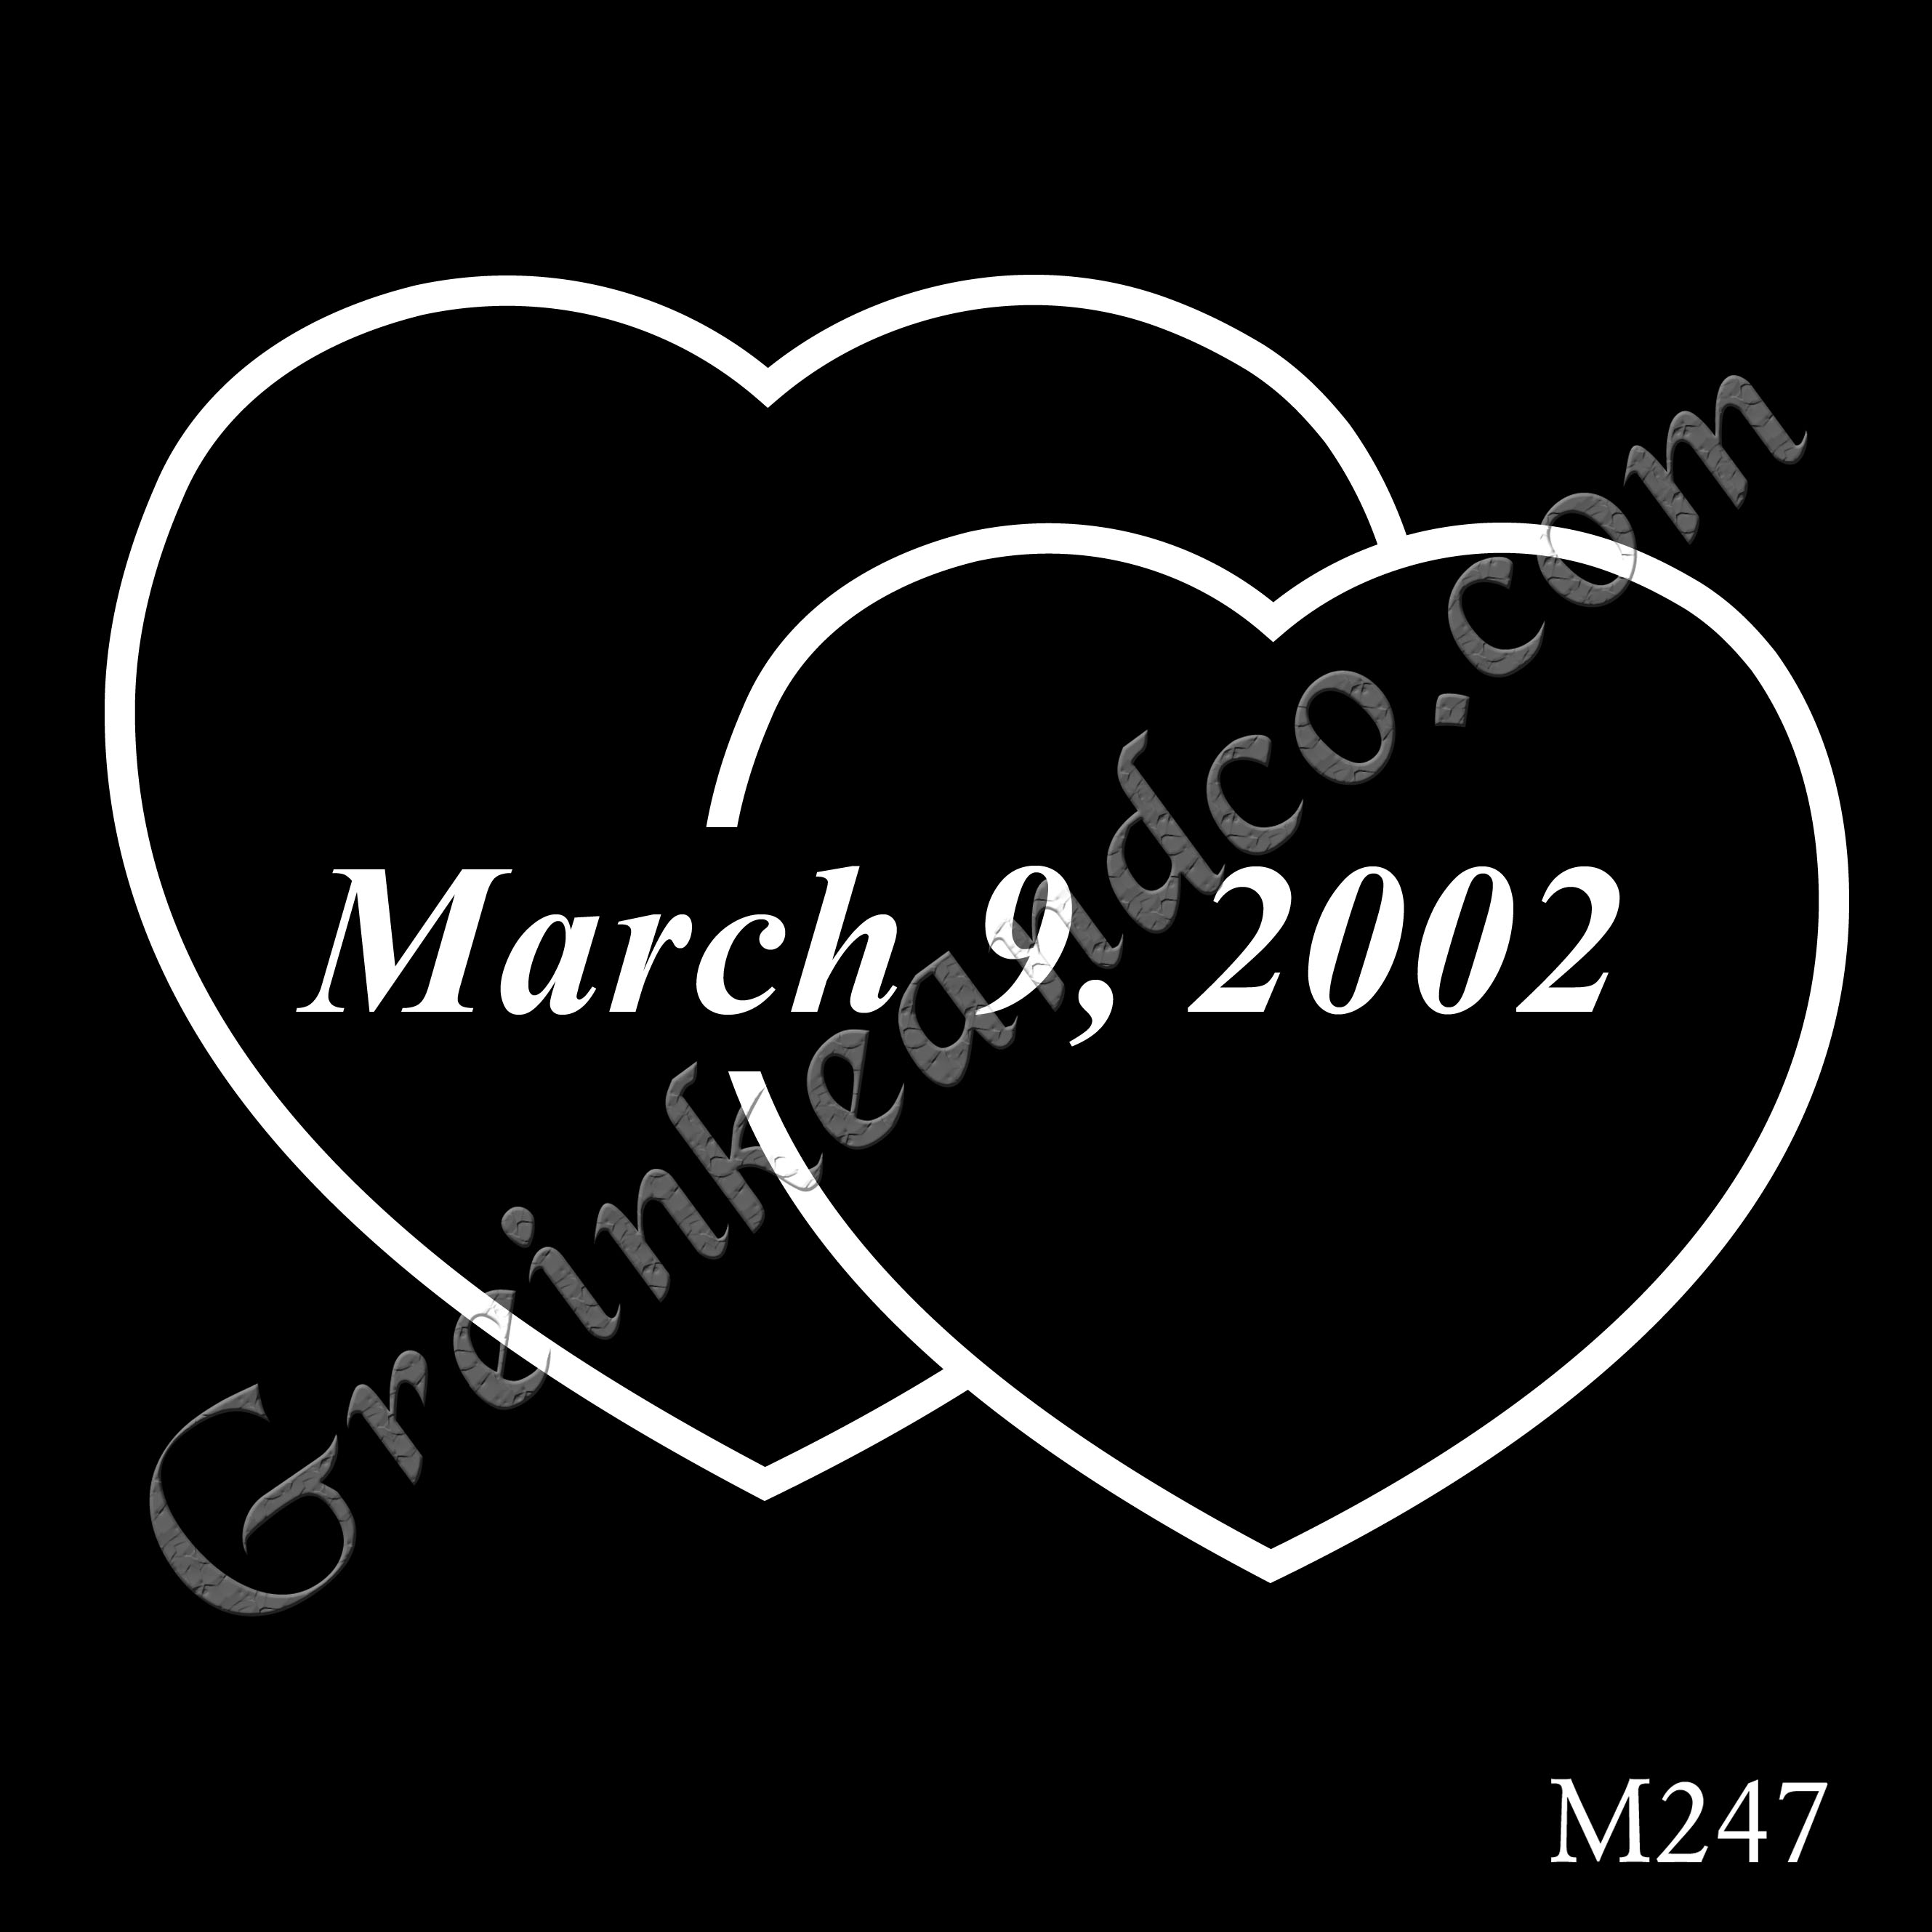 two heart outlines with date in the middle